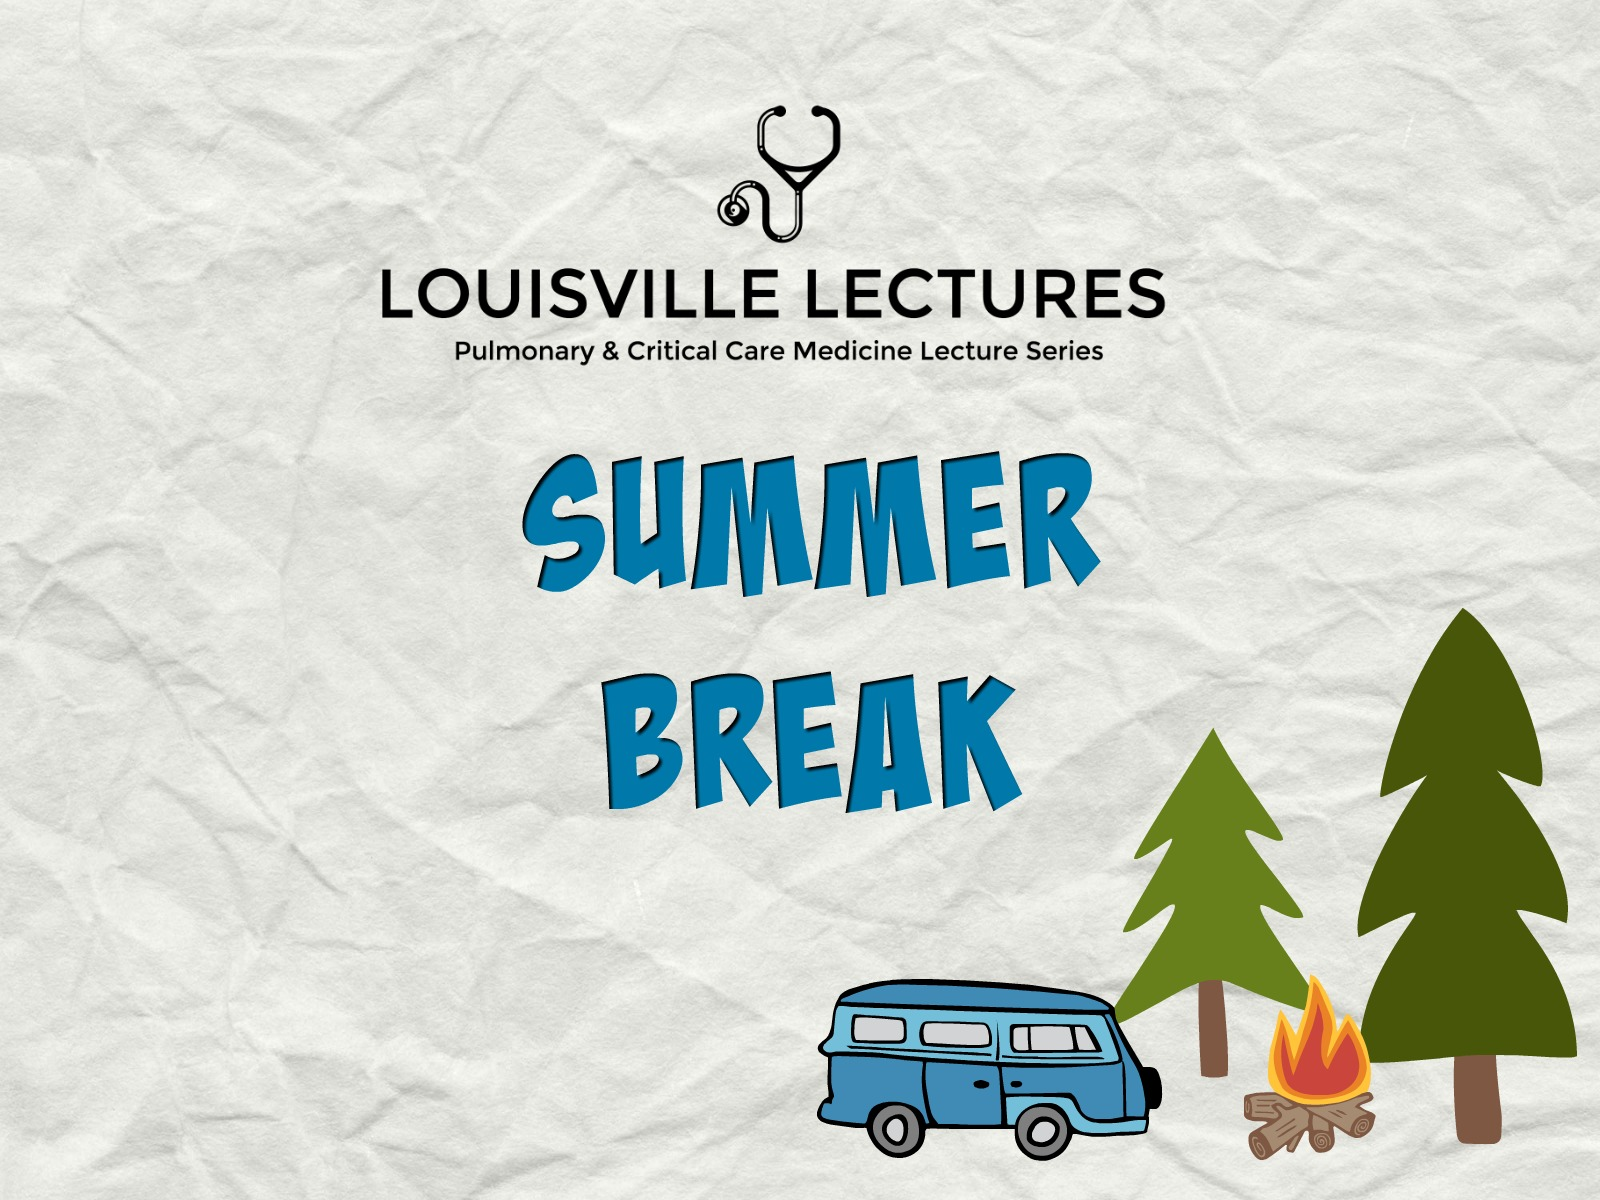 Summer is here! - We hope you've enjoyed our first set of lectures from the 2018 -2019 academic year. We will be taking a short break from posting this summer in order to keep our lectures fresh and relevant. We will be back in the fall with new content. See you soon!- PulmCrit Louisville Lectures